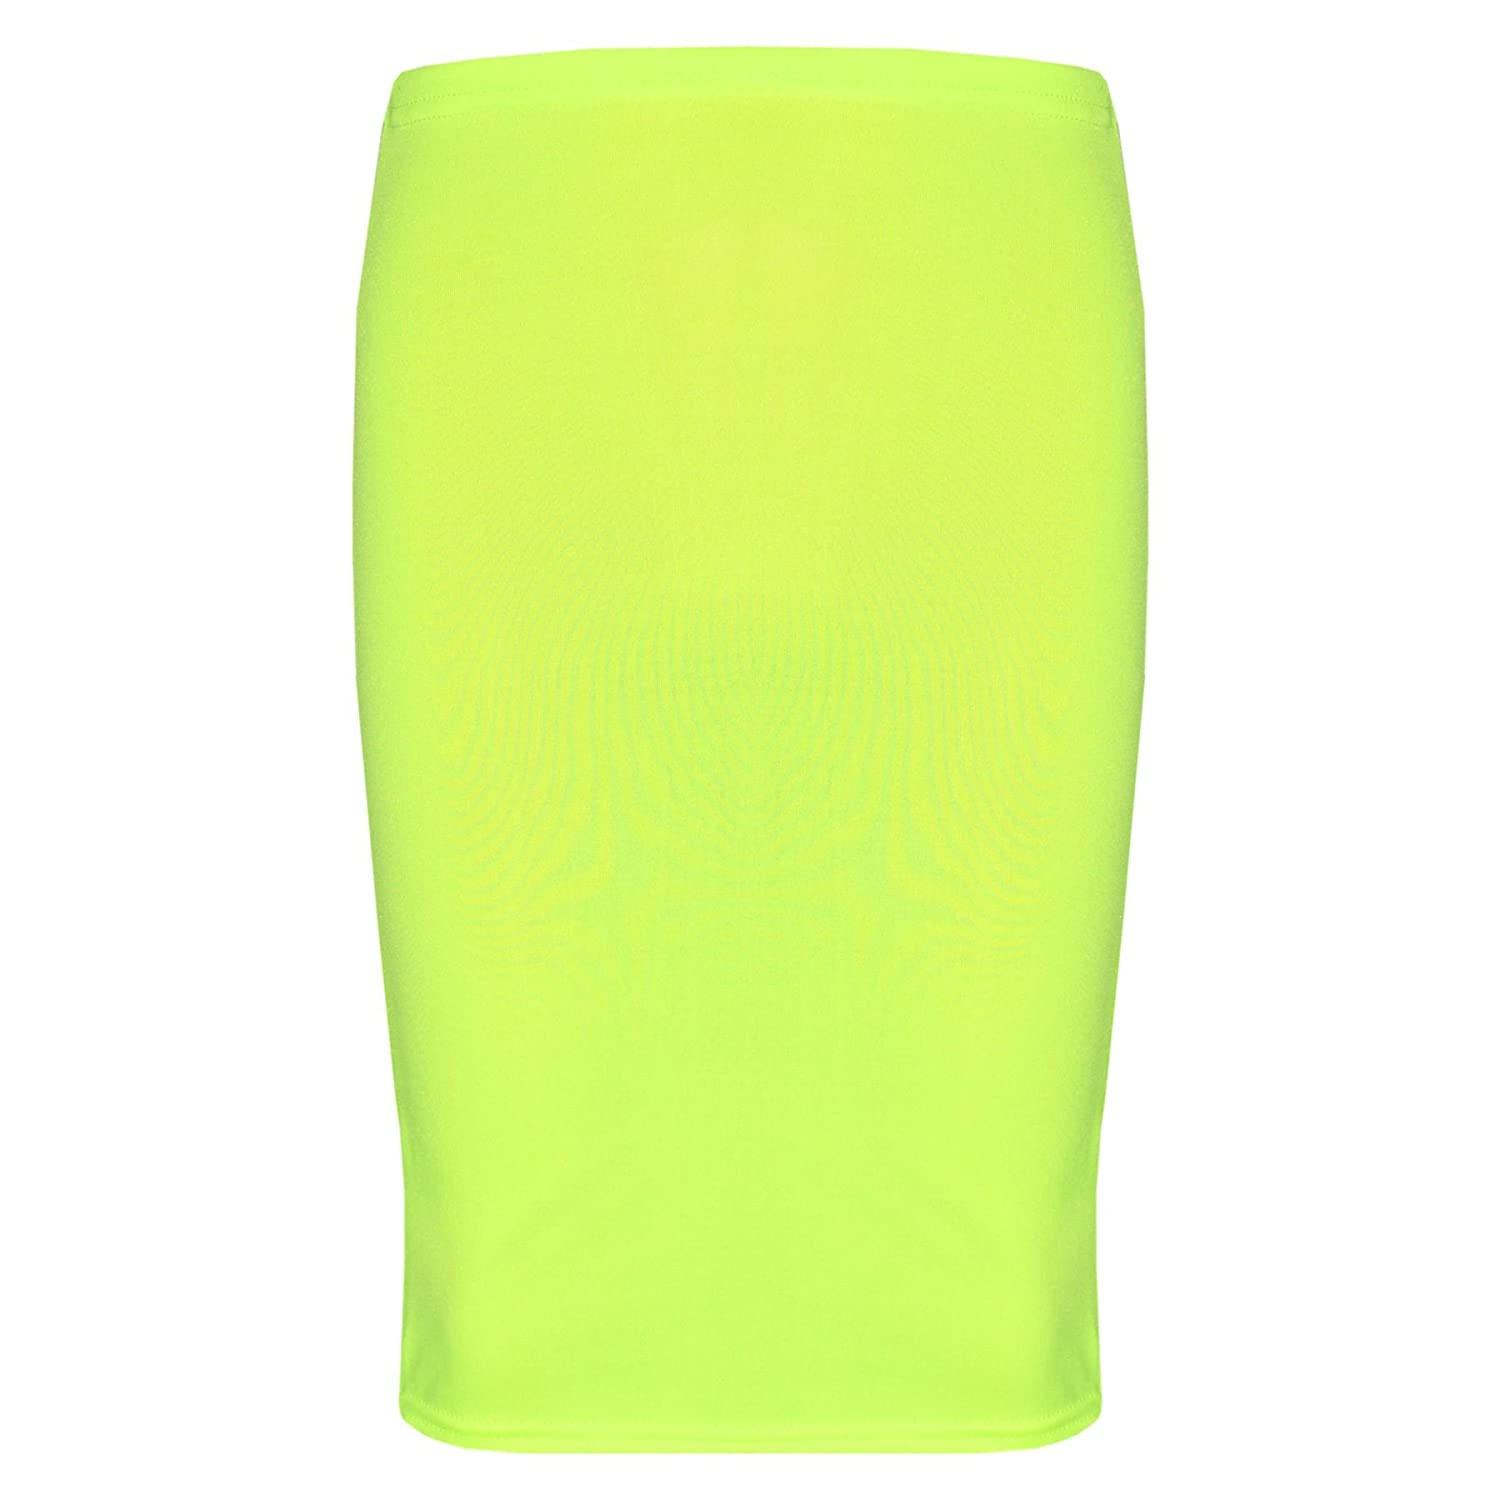 A2Z 4 Kids® Girls Skirt Kids Plain Color School Fashion Dance Pencil Skirts Age 5 6 7 8 9 10 11 12 13 Years